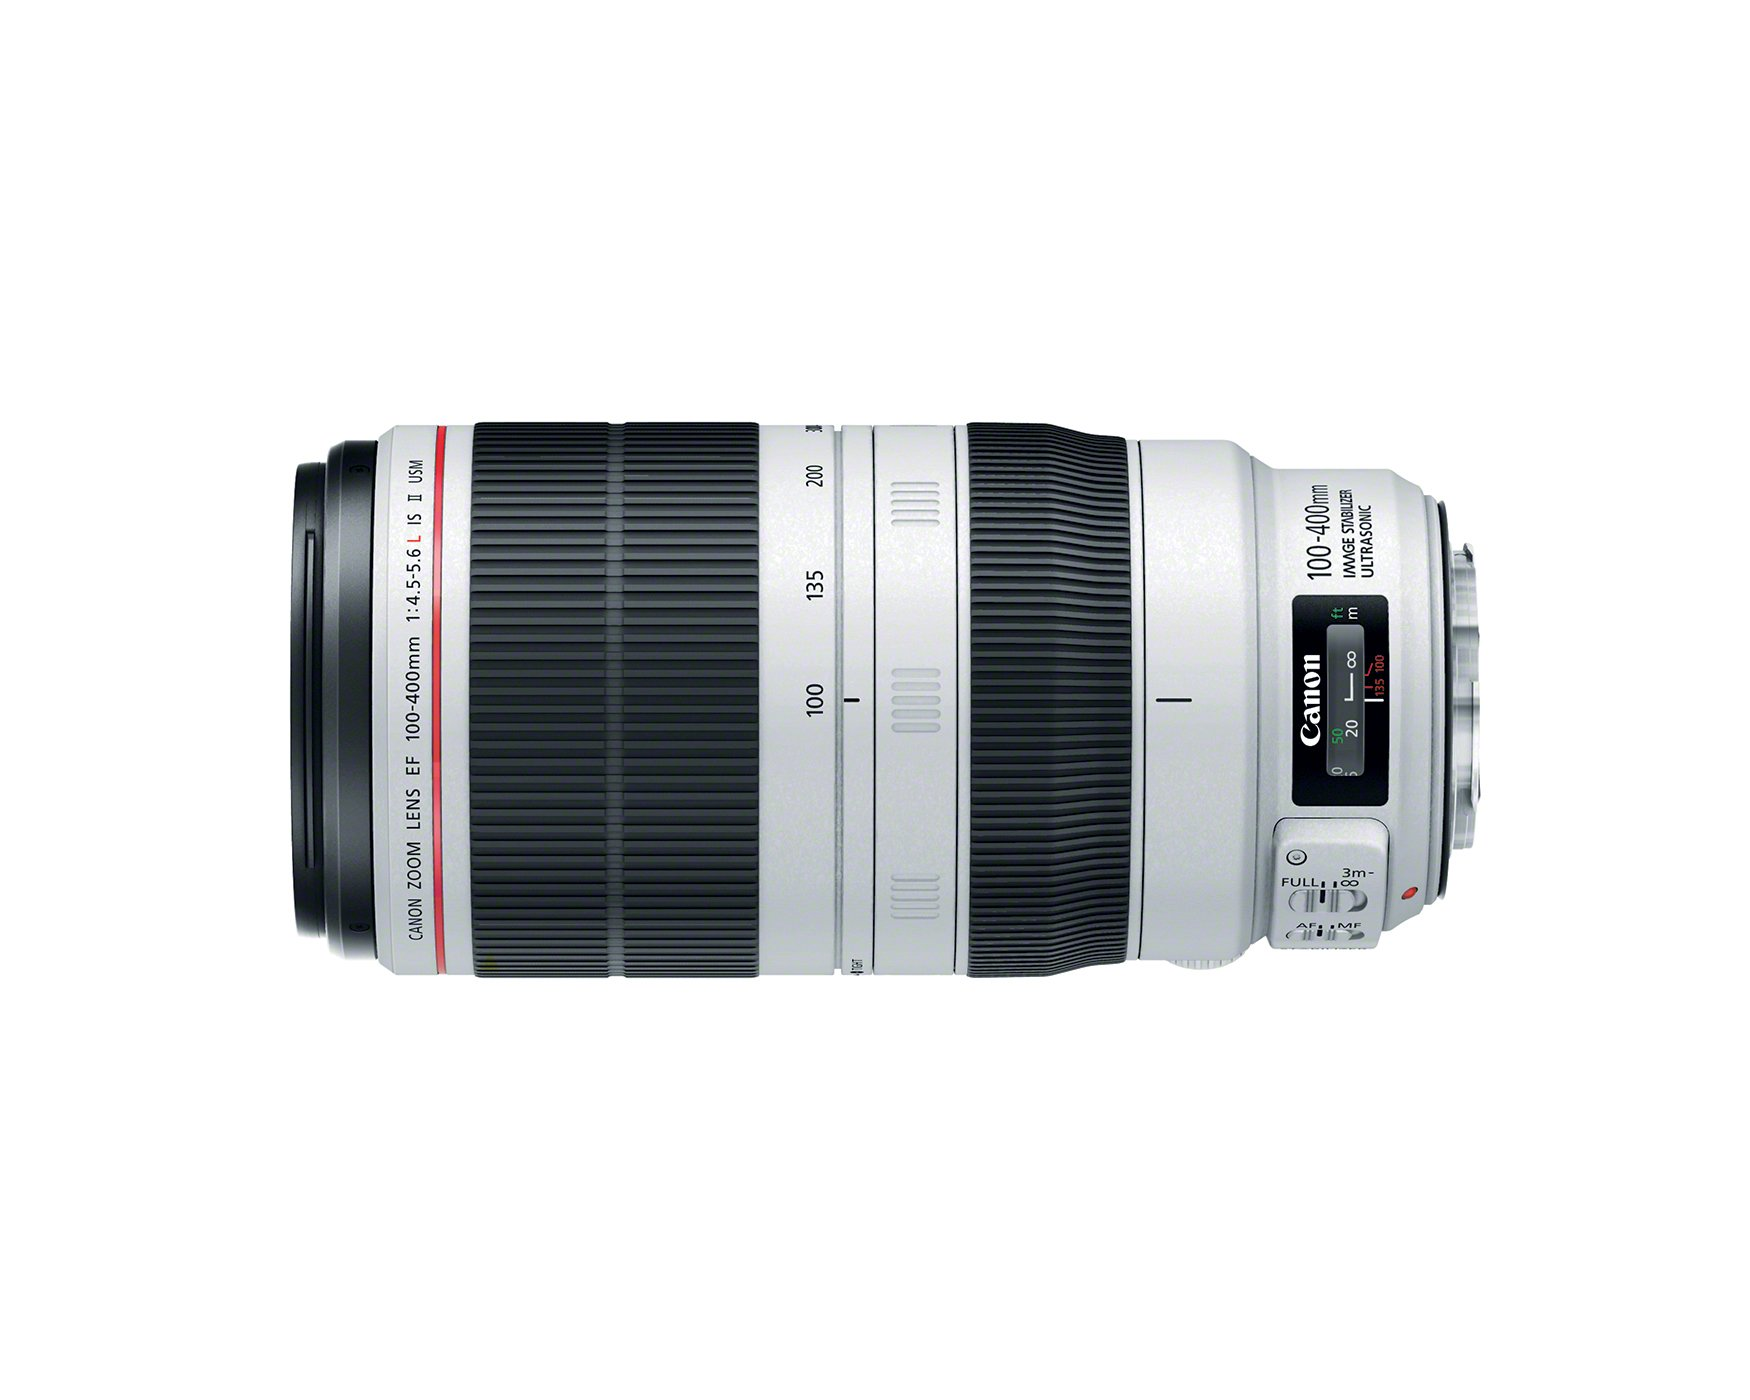 Canon EF 100-400mm f/4.5-5.6L IS II USM SLR Telephoto lens Black,White - camera lenses (SLR, Teleph